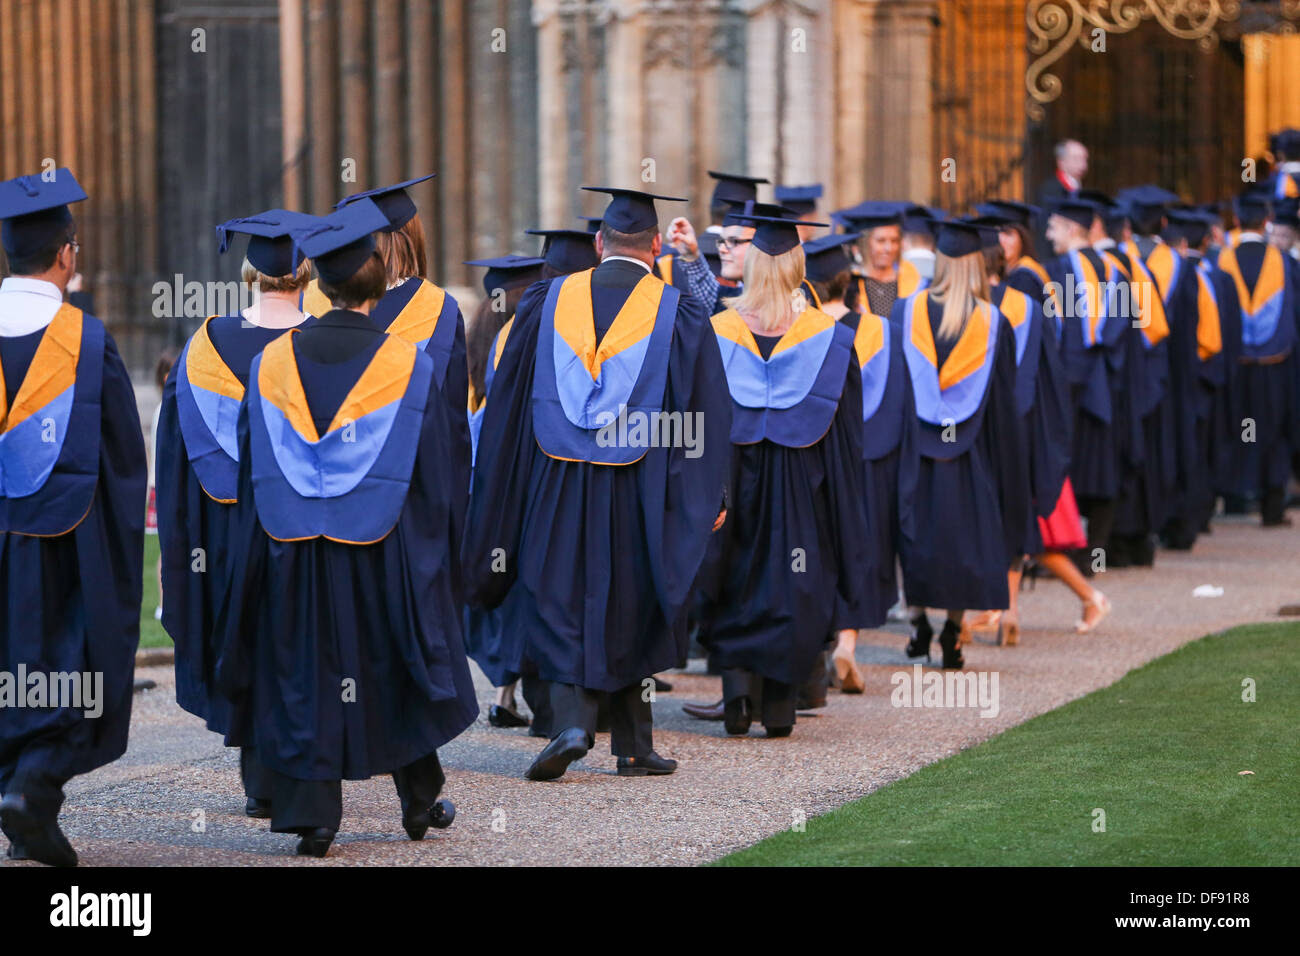 STUDENTS ON GRADUATION DAY FROM ANGLIA RUSKIN UNIVERSITY IN ...